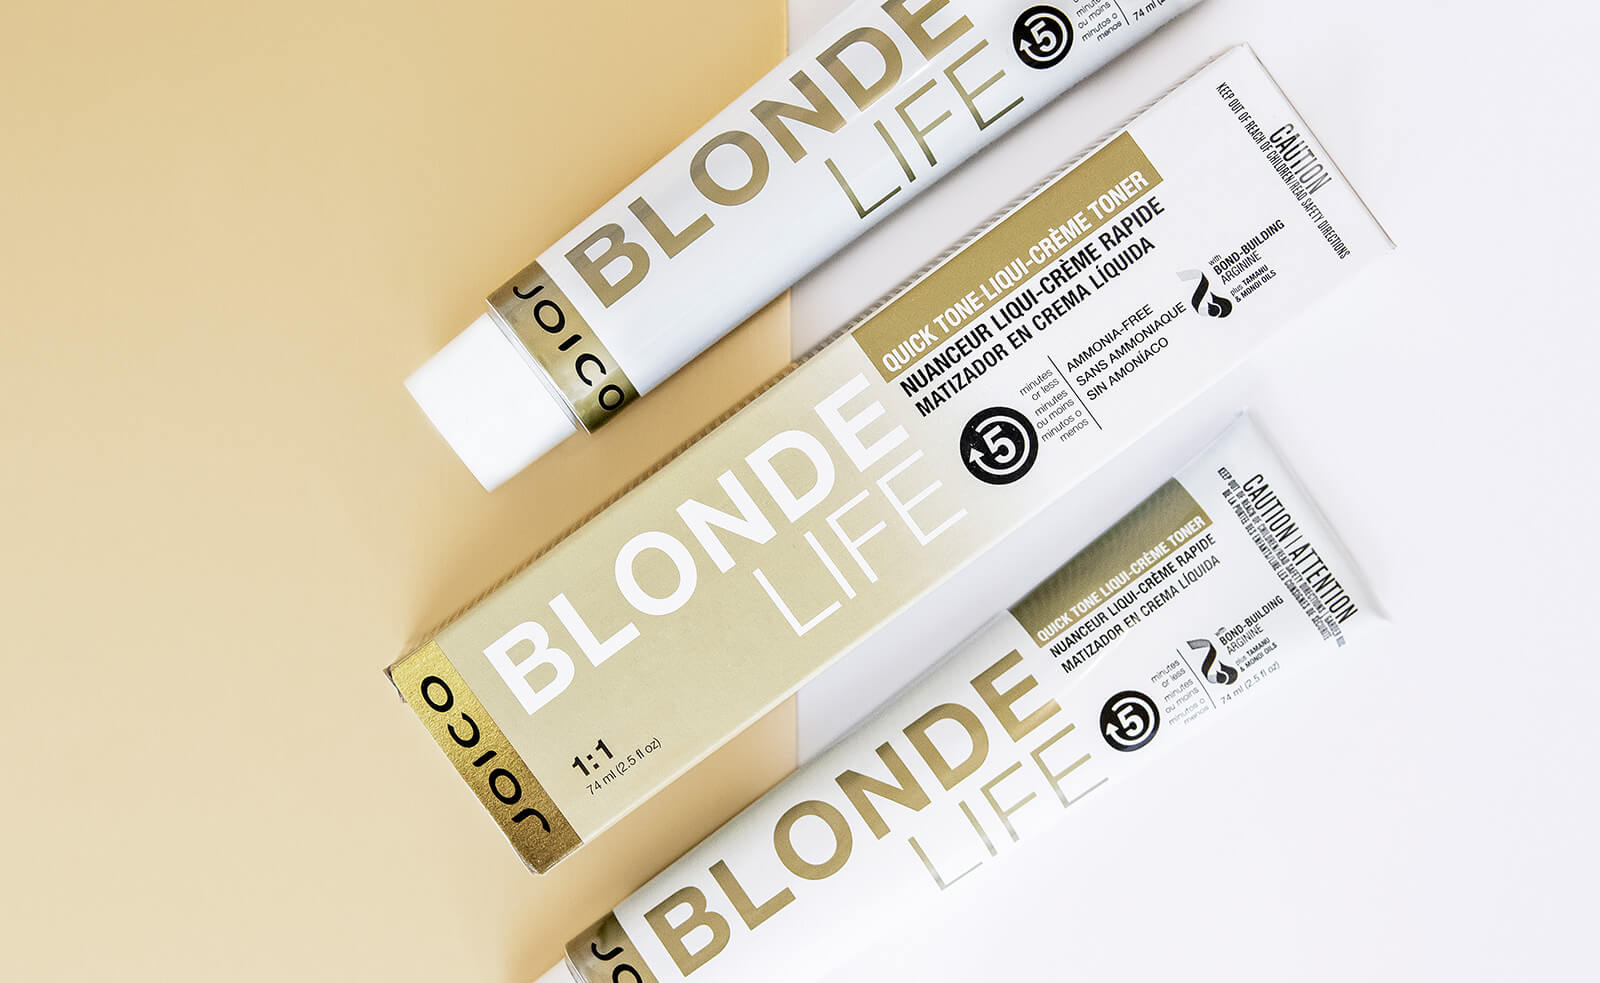 Blonde Life Quick-Tone Box and tubes